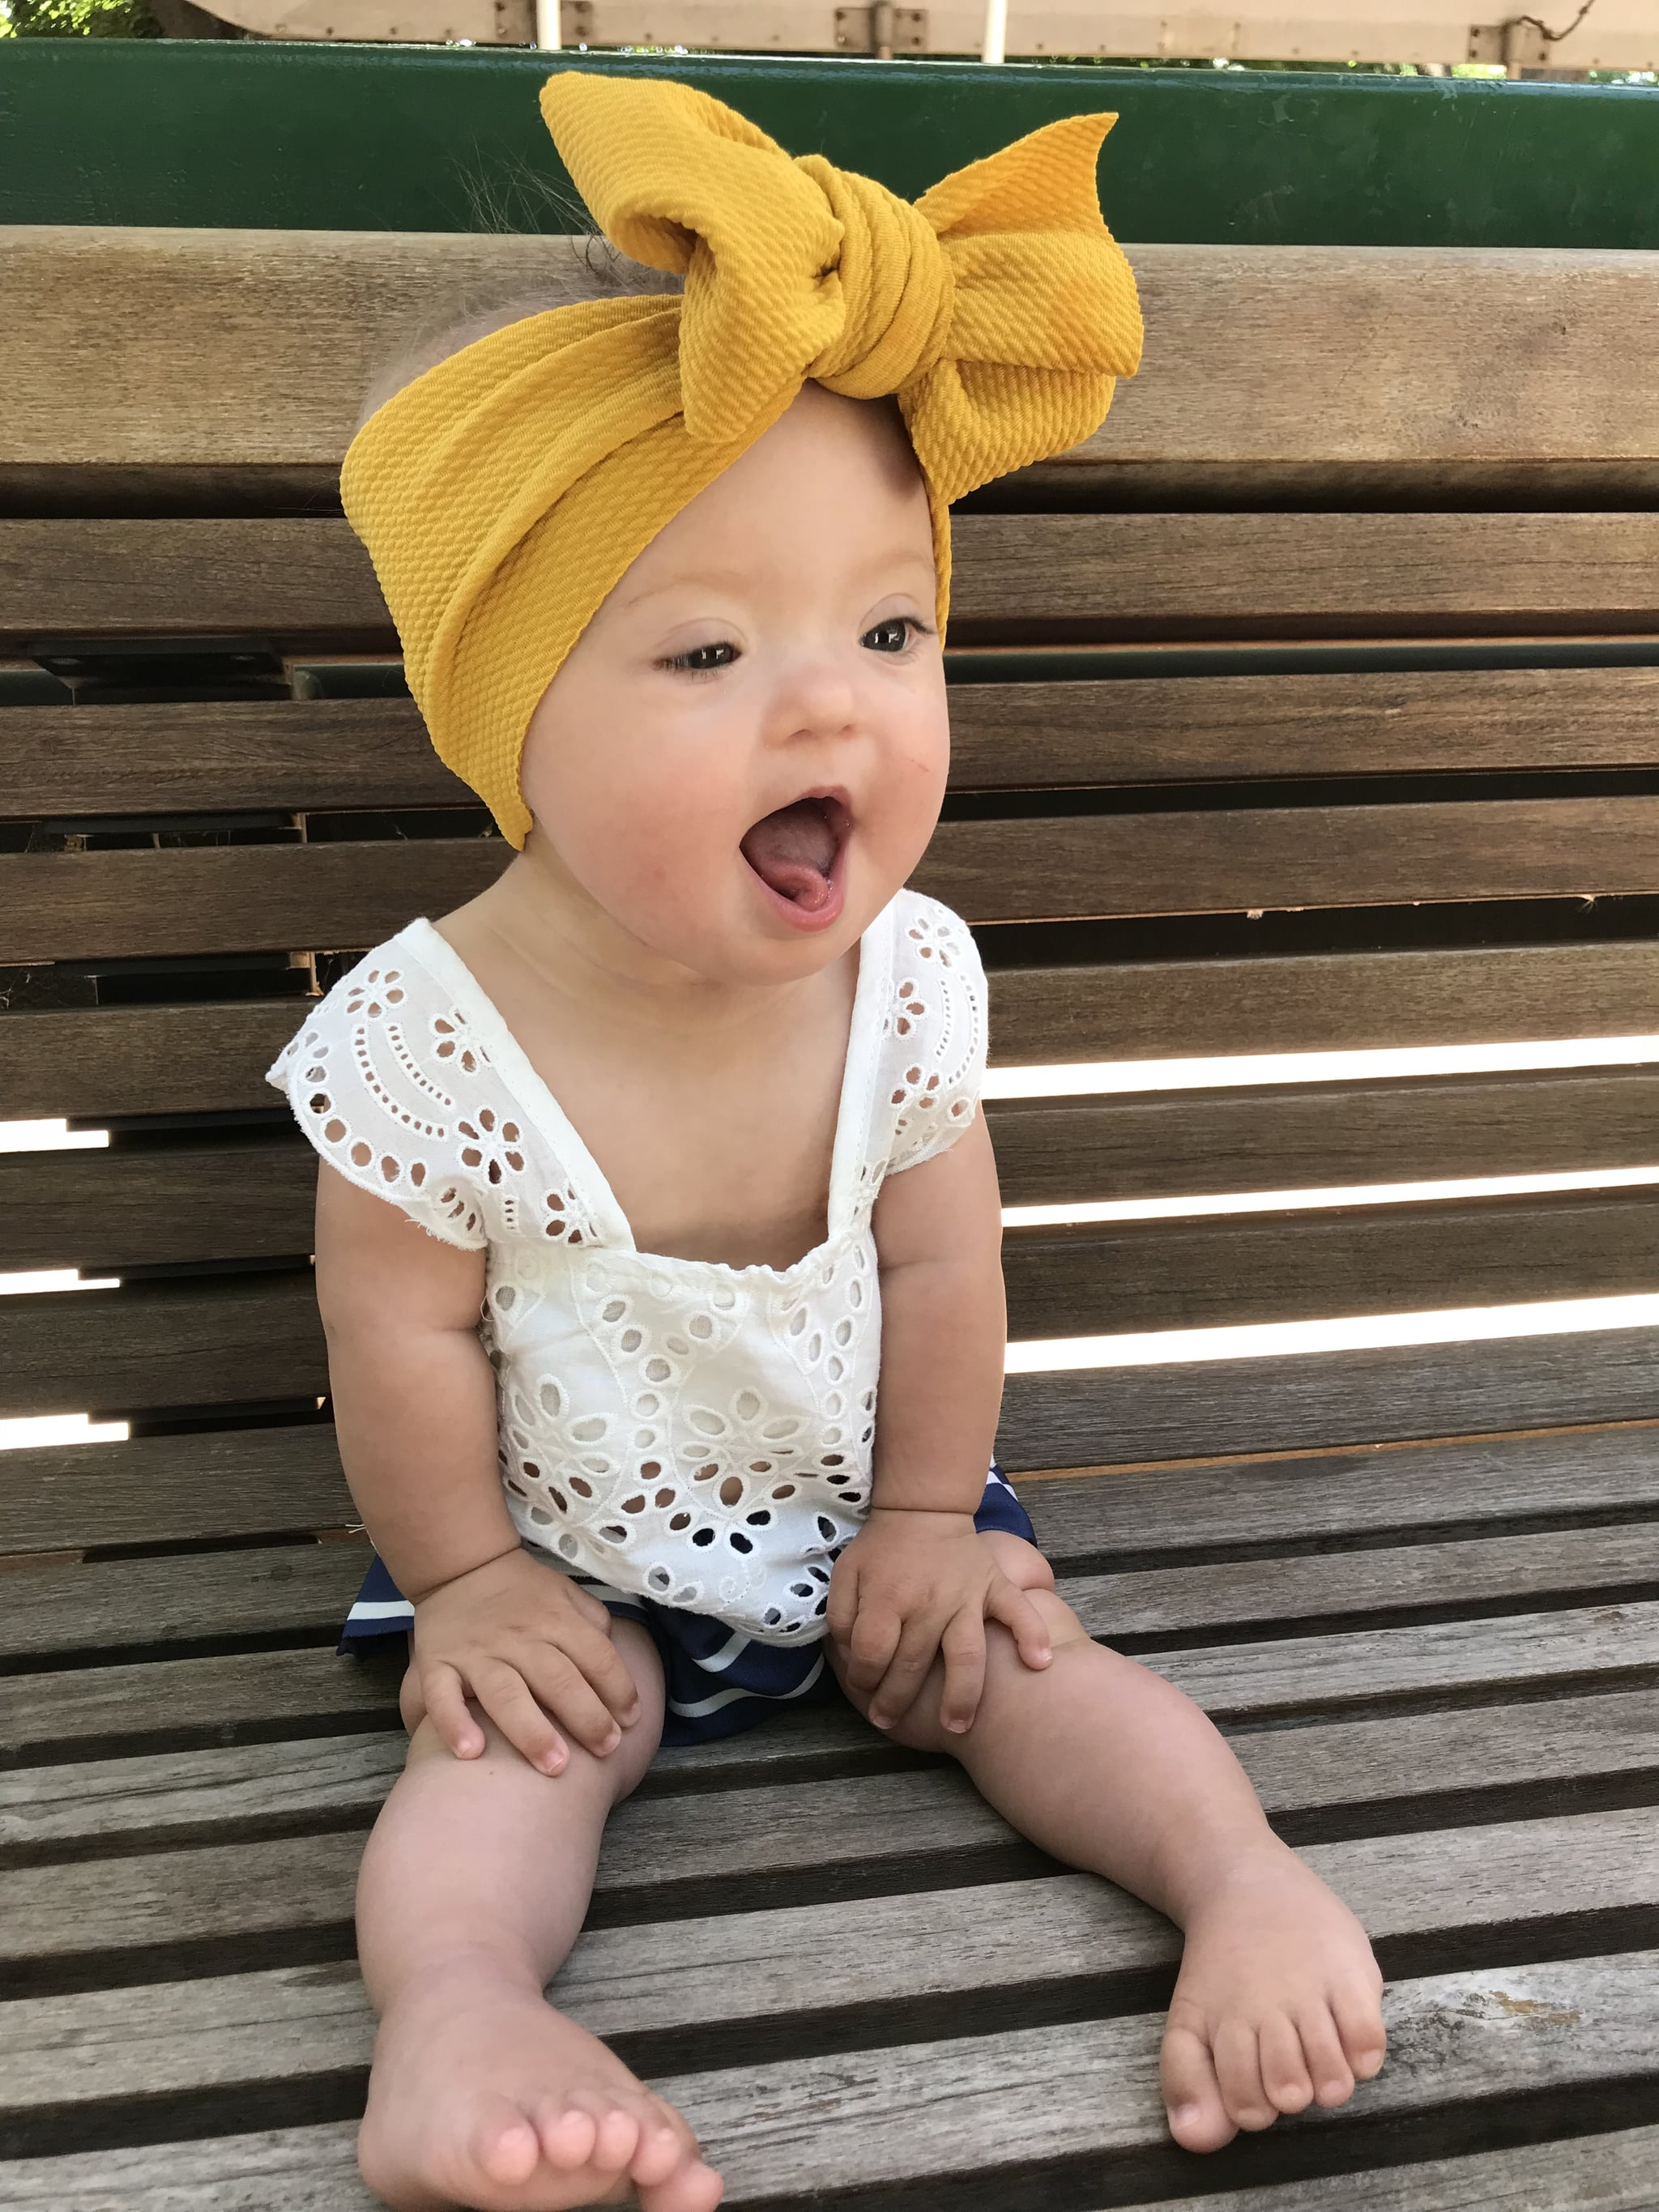 Photos of Babies With Down Syndrome   POPSUGAR Family